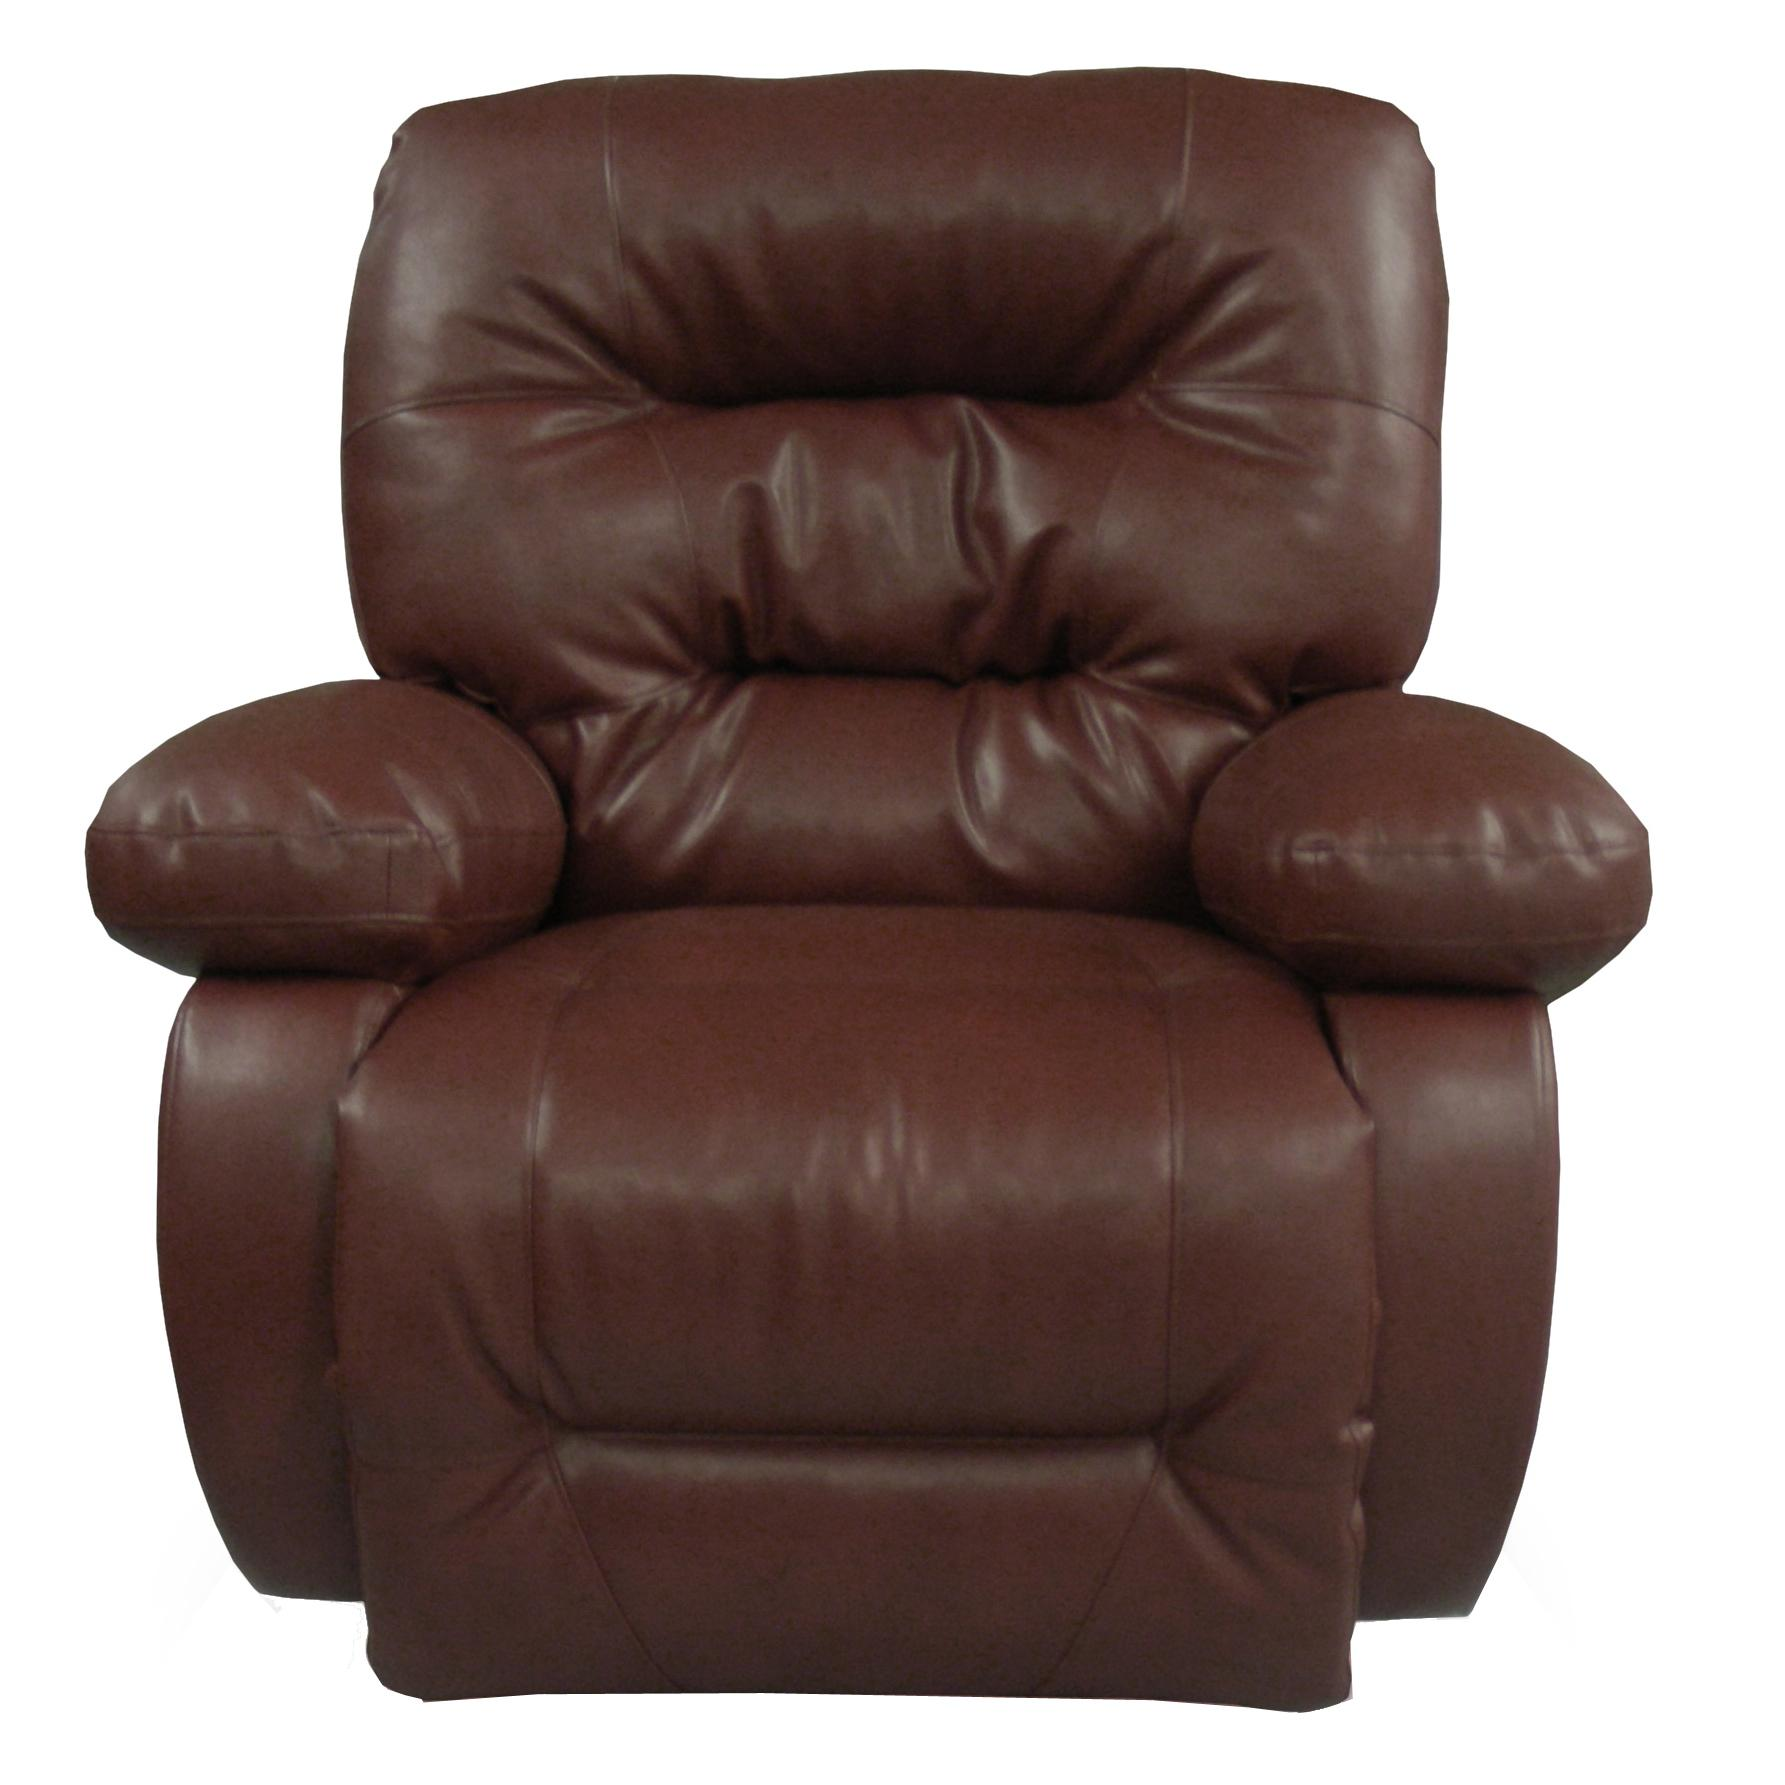 Best Home Furnishings Recliners - Medium Maddox Power Rocker Recliner - Item Number: 8NP47LV